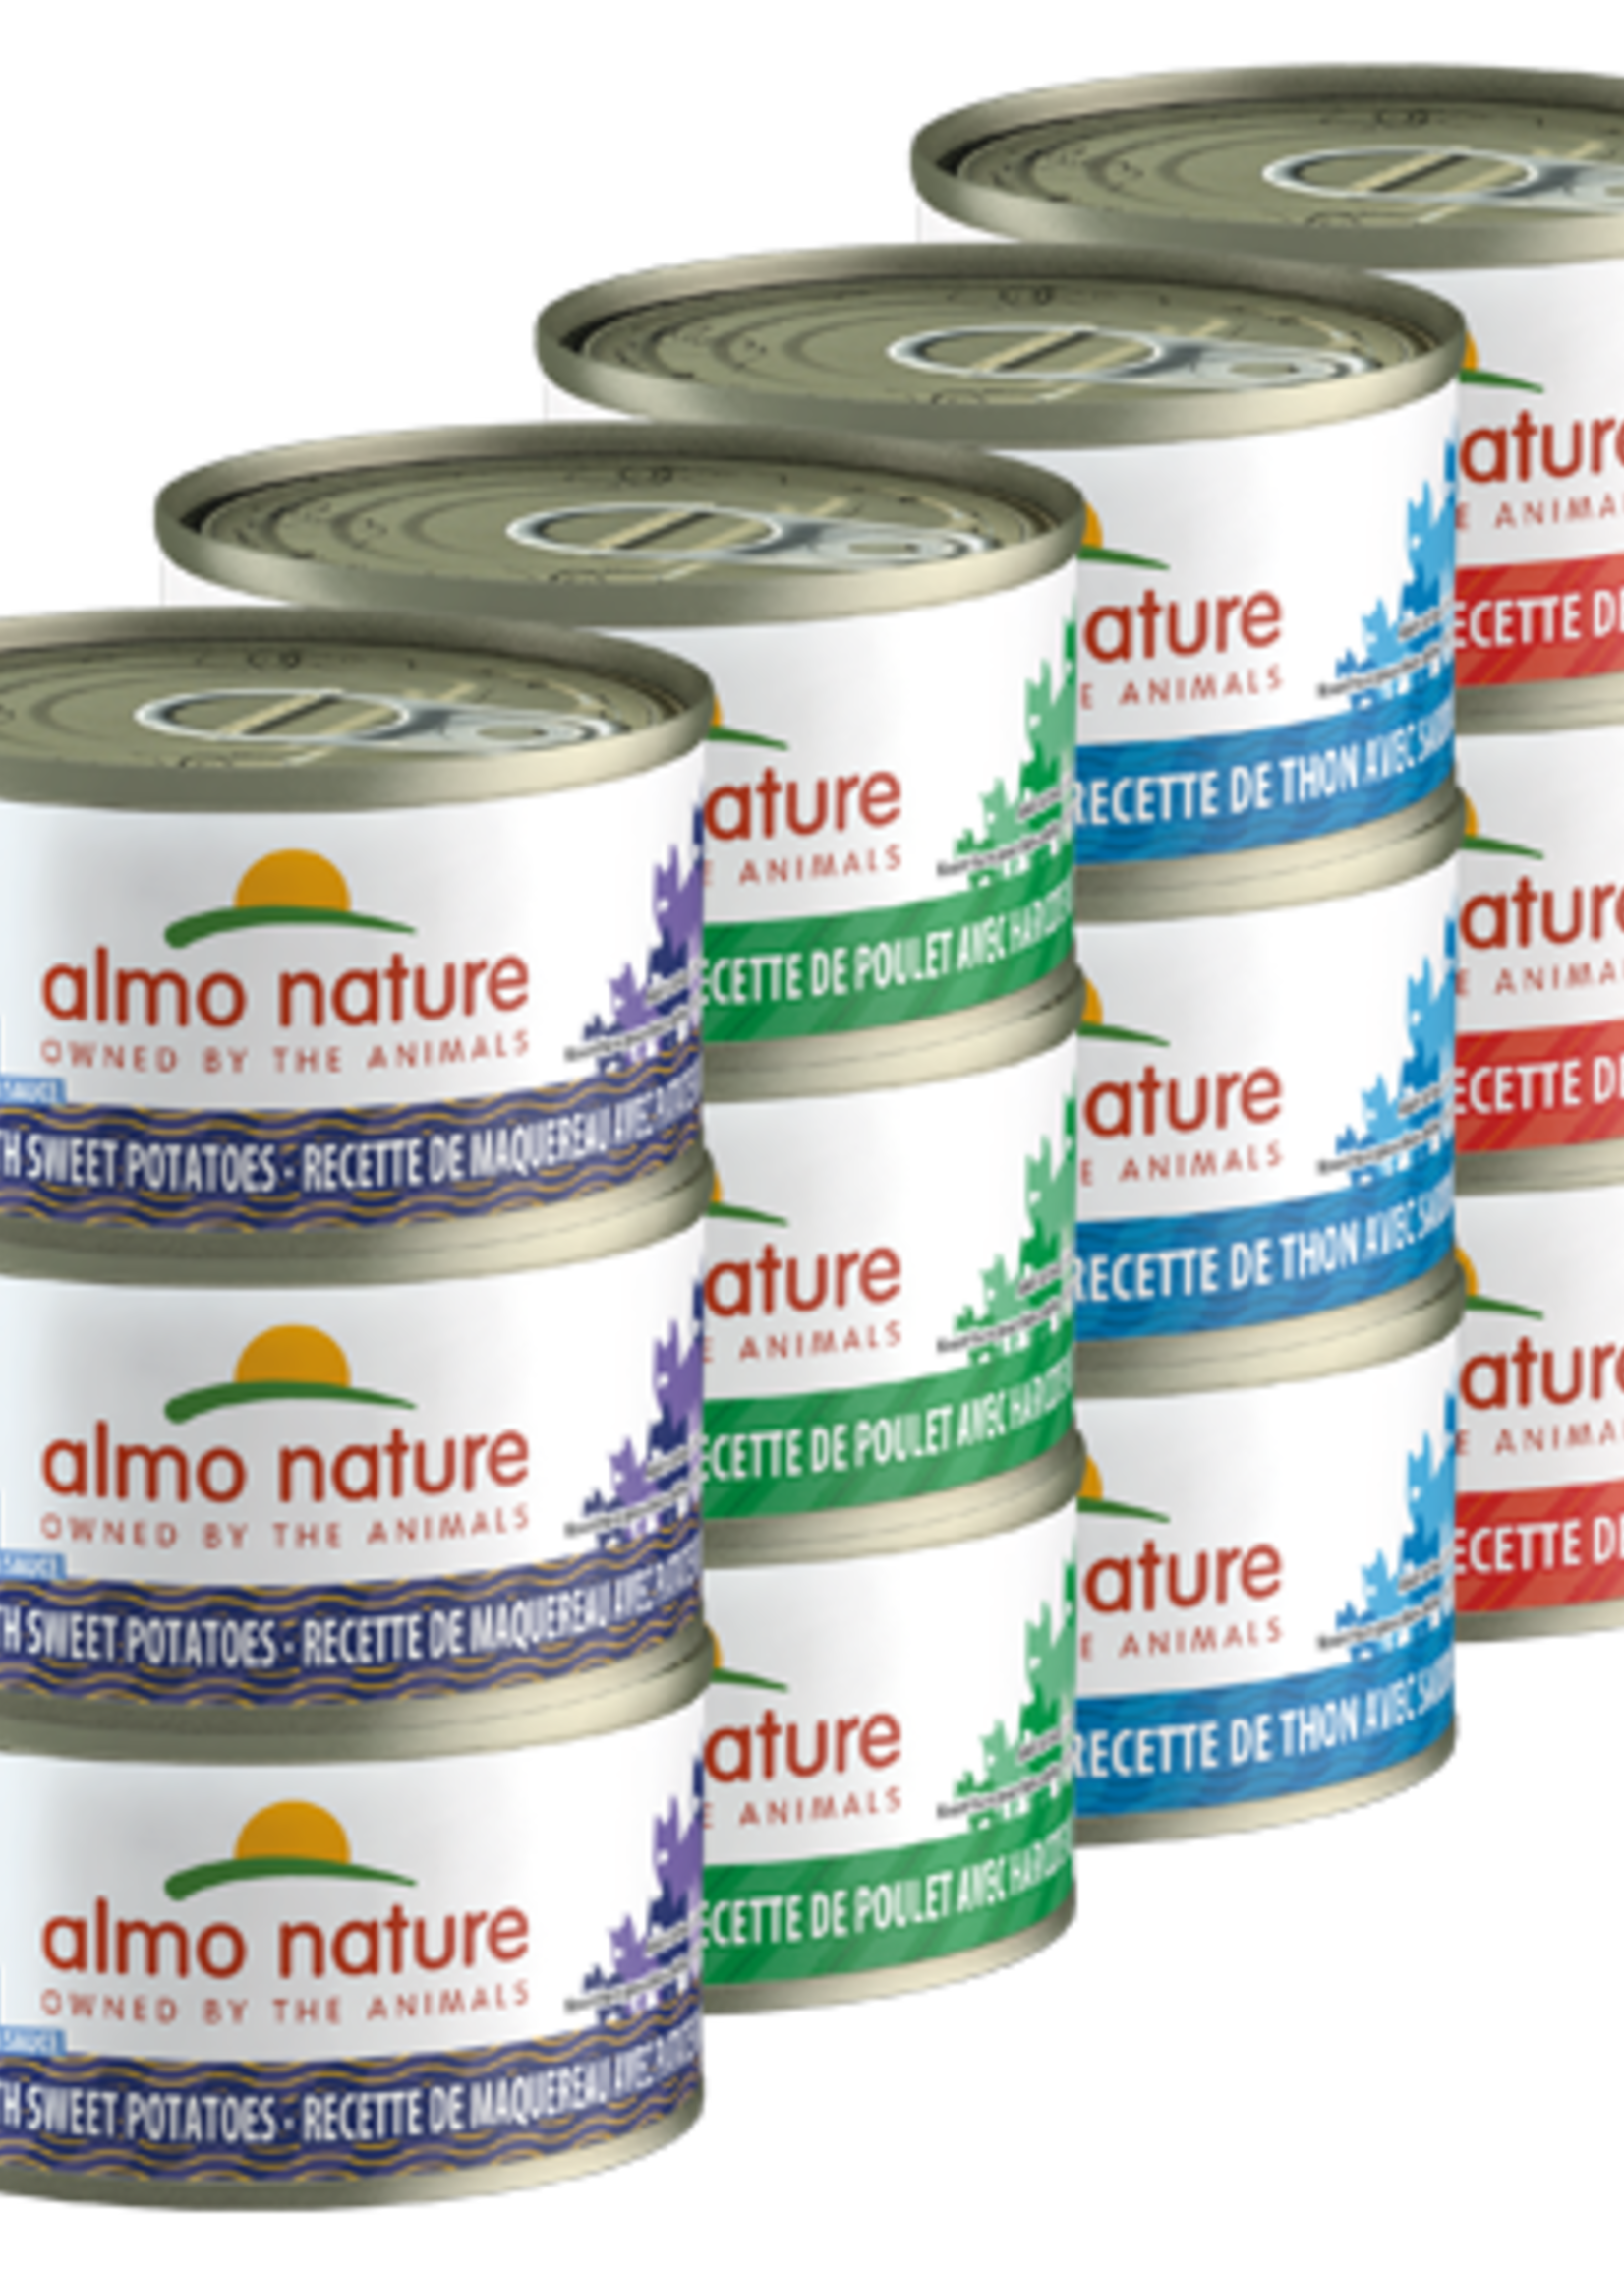 Almo Nature© Almo Nature HQS Complete Variety Pack